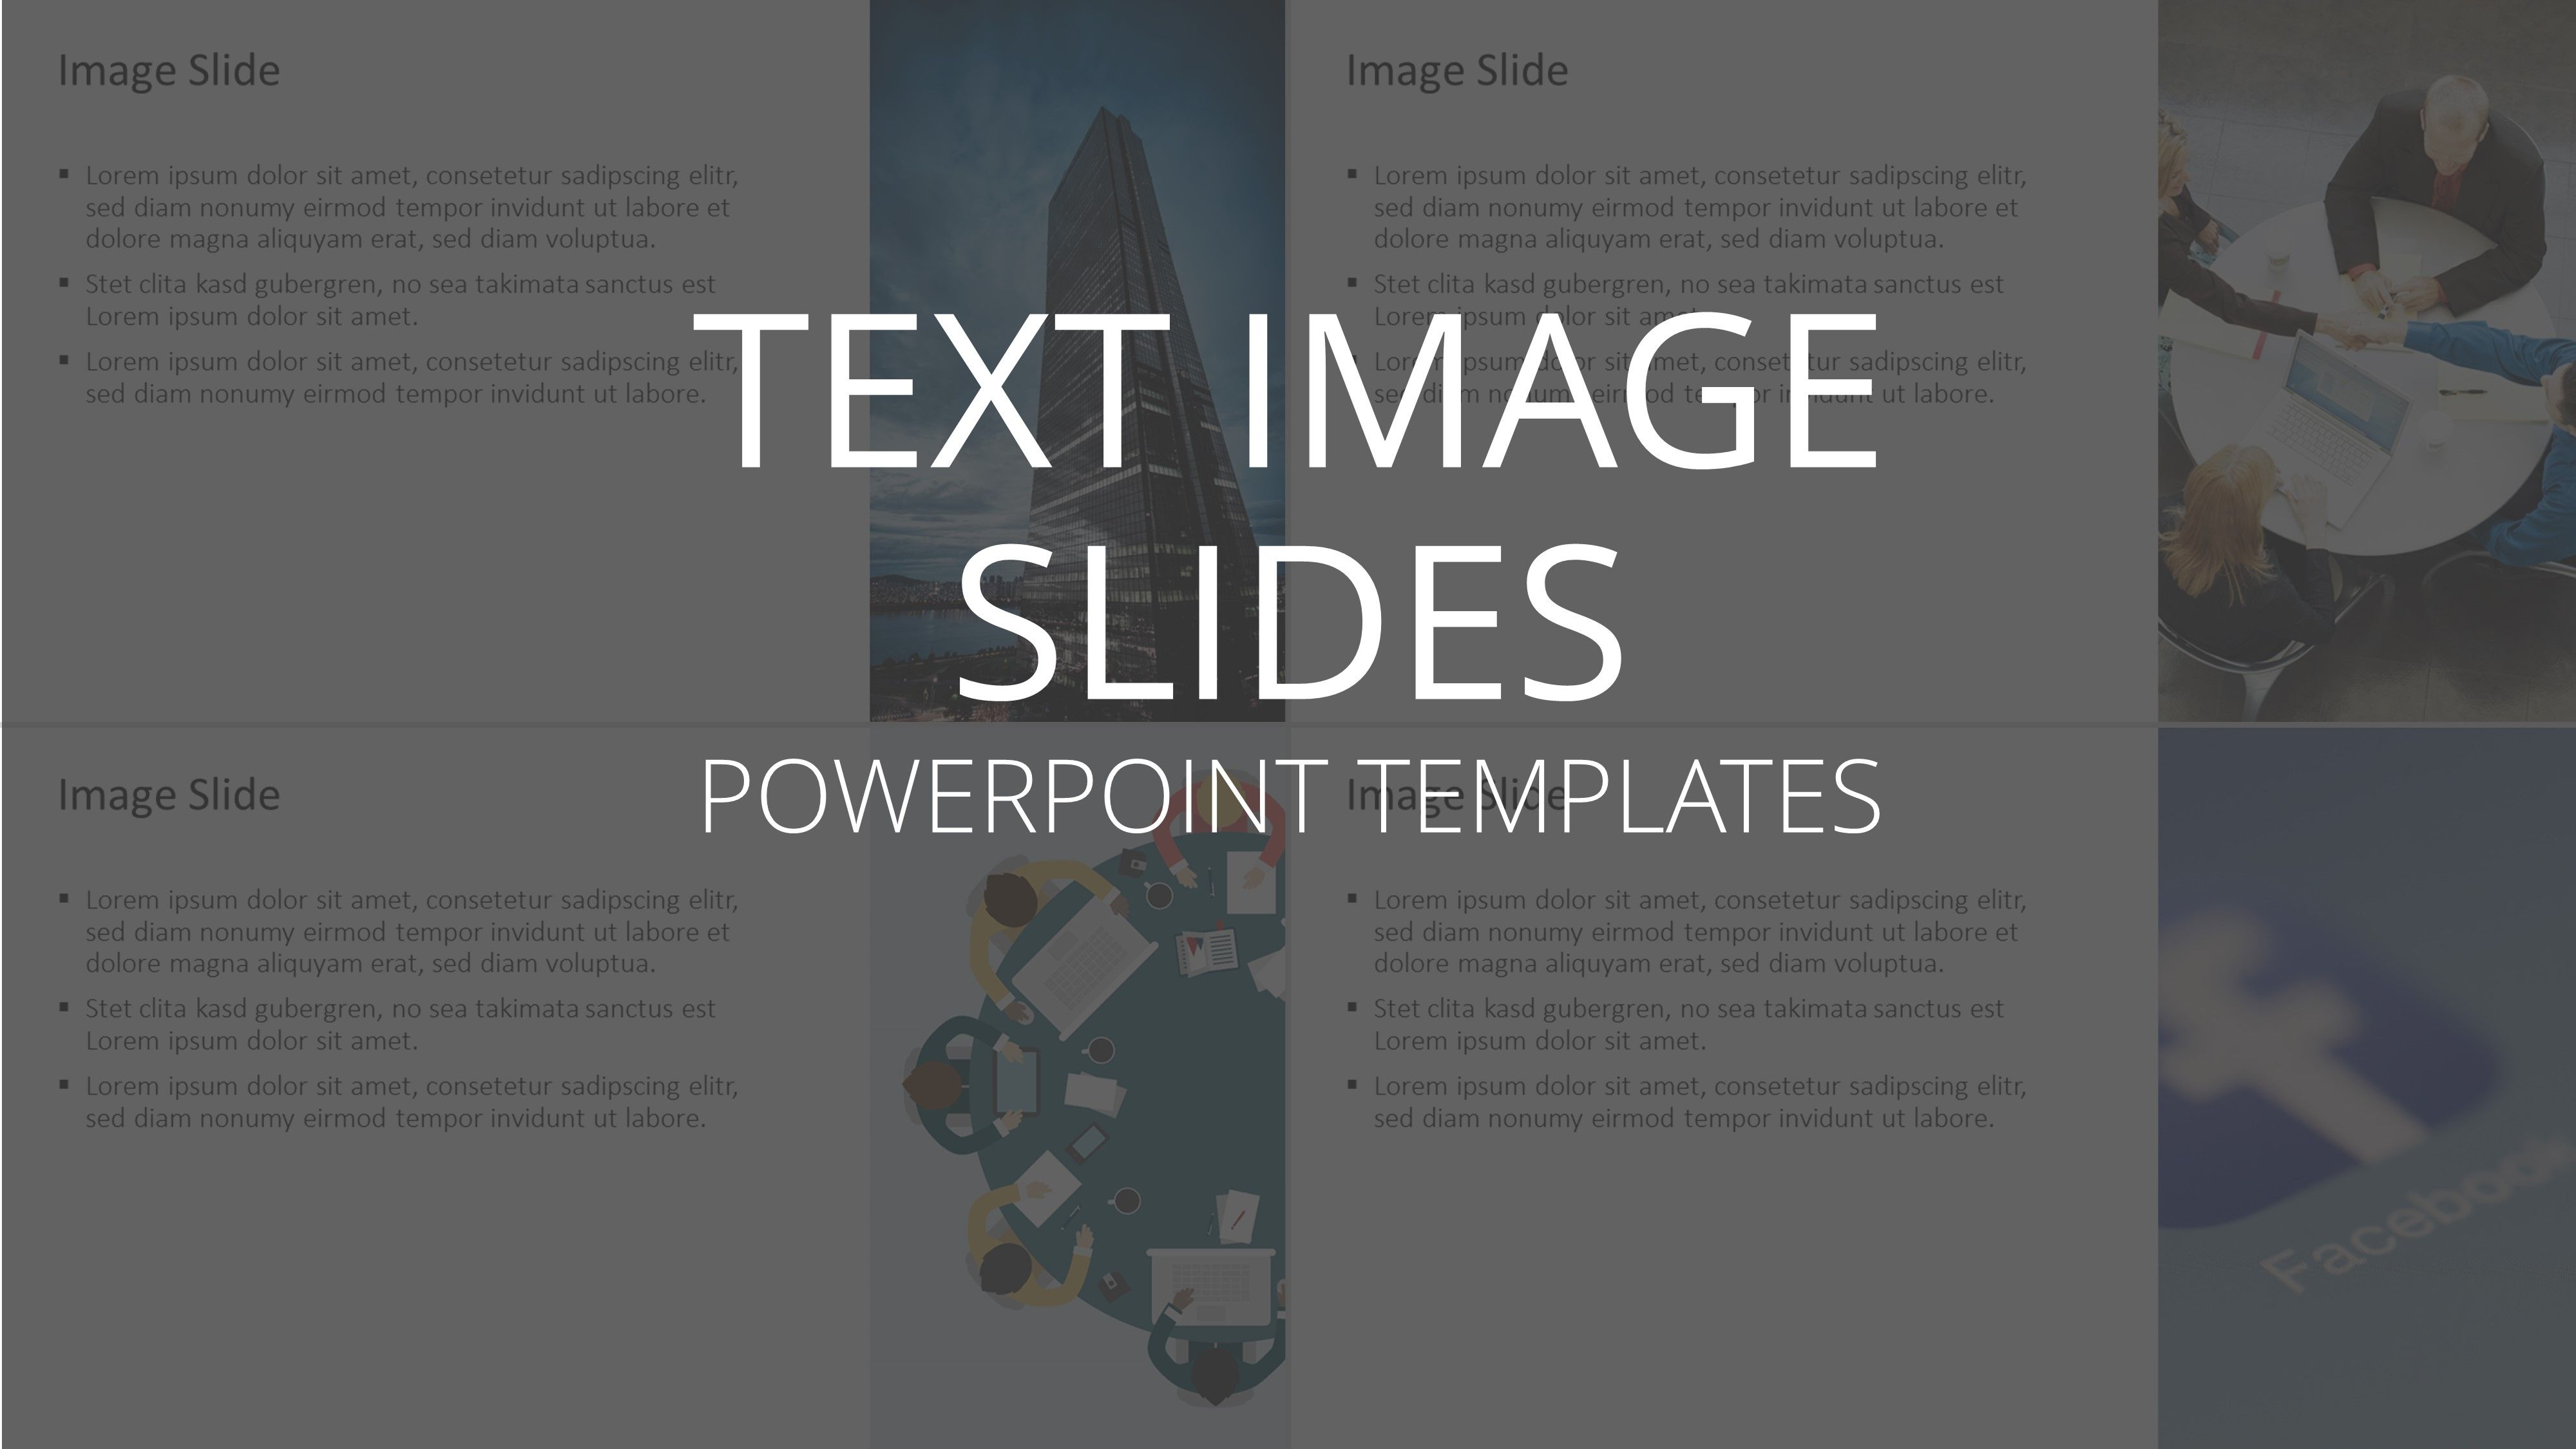 Use our text image slides to create a successful